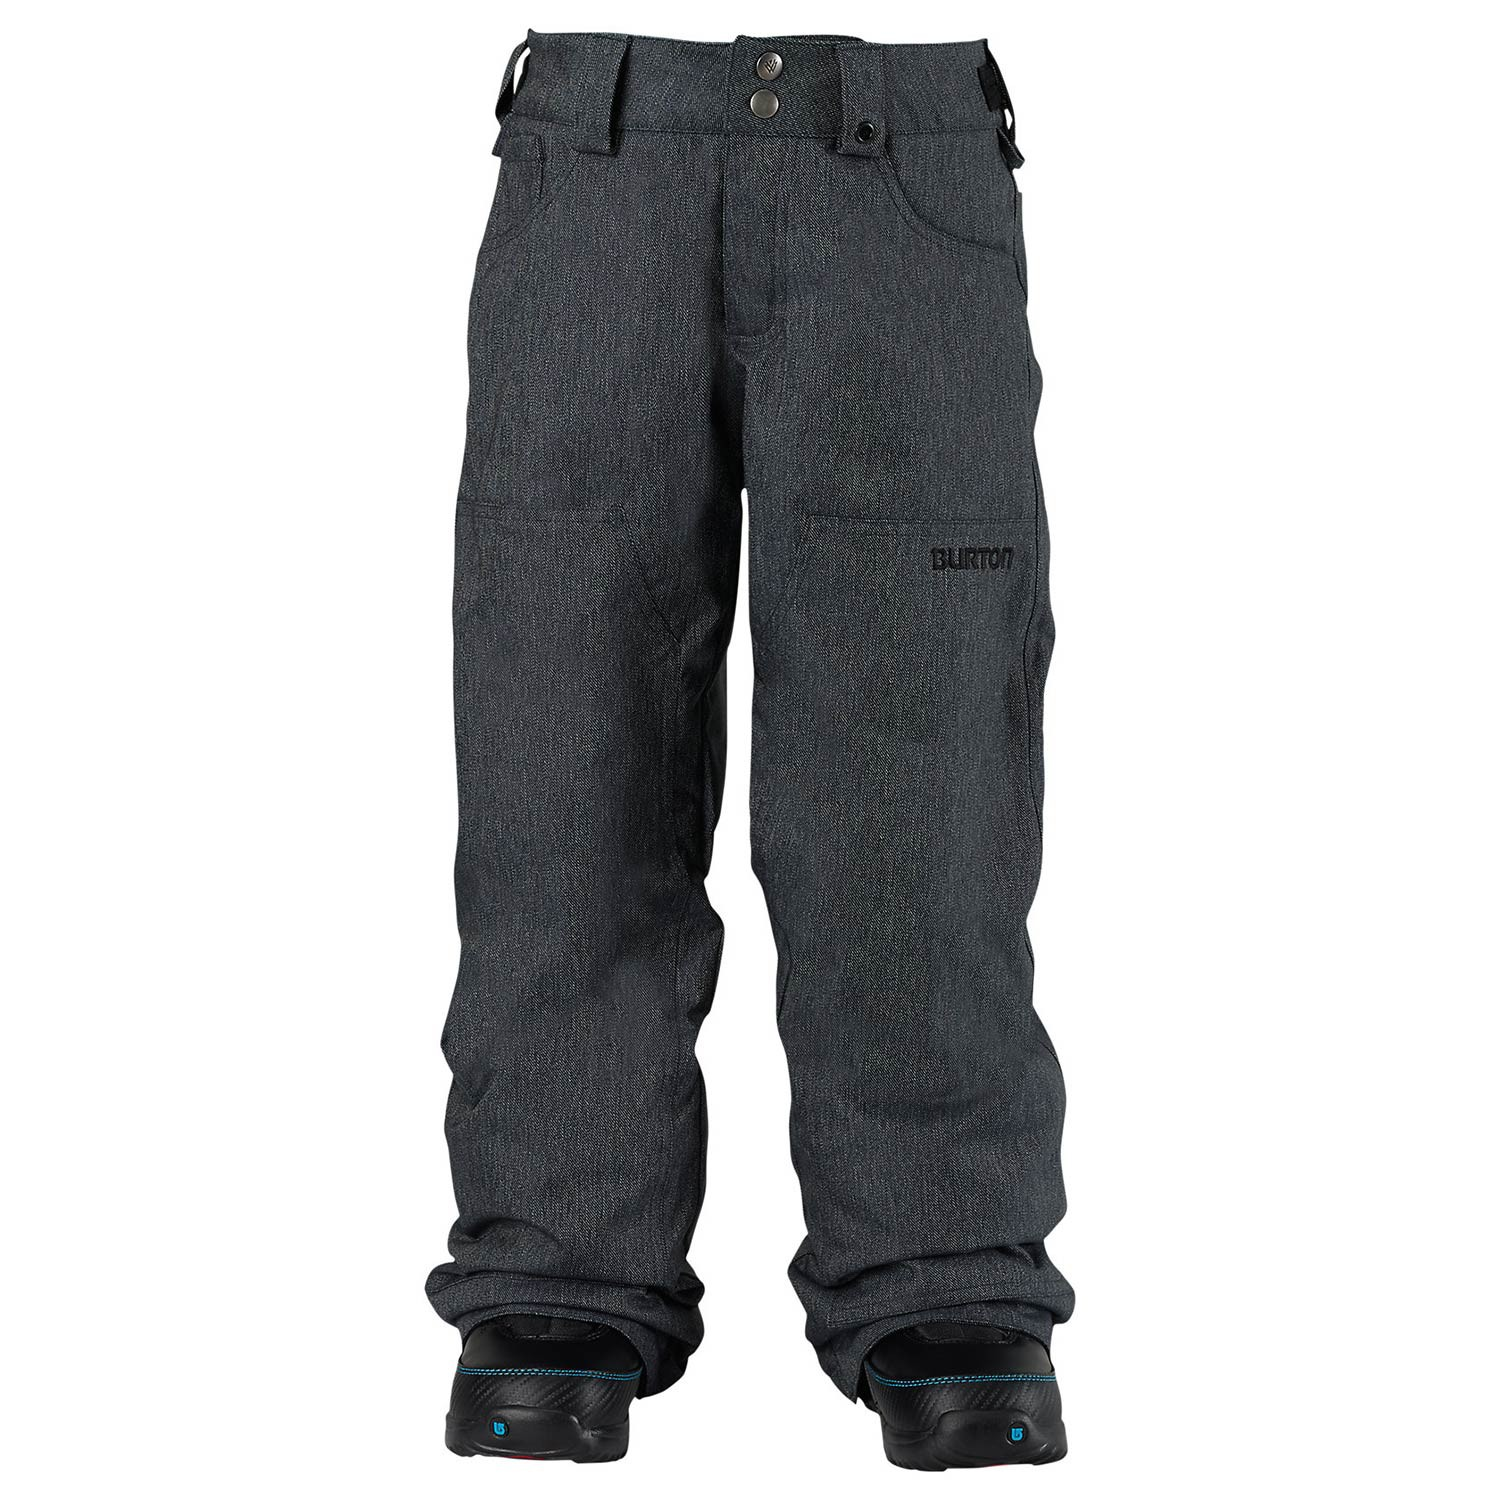 Kalhoty Burton Boys Twc Greenlight black denim